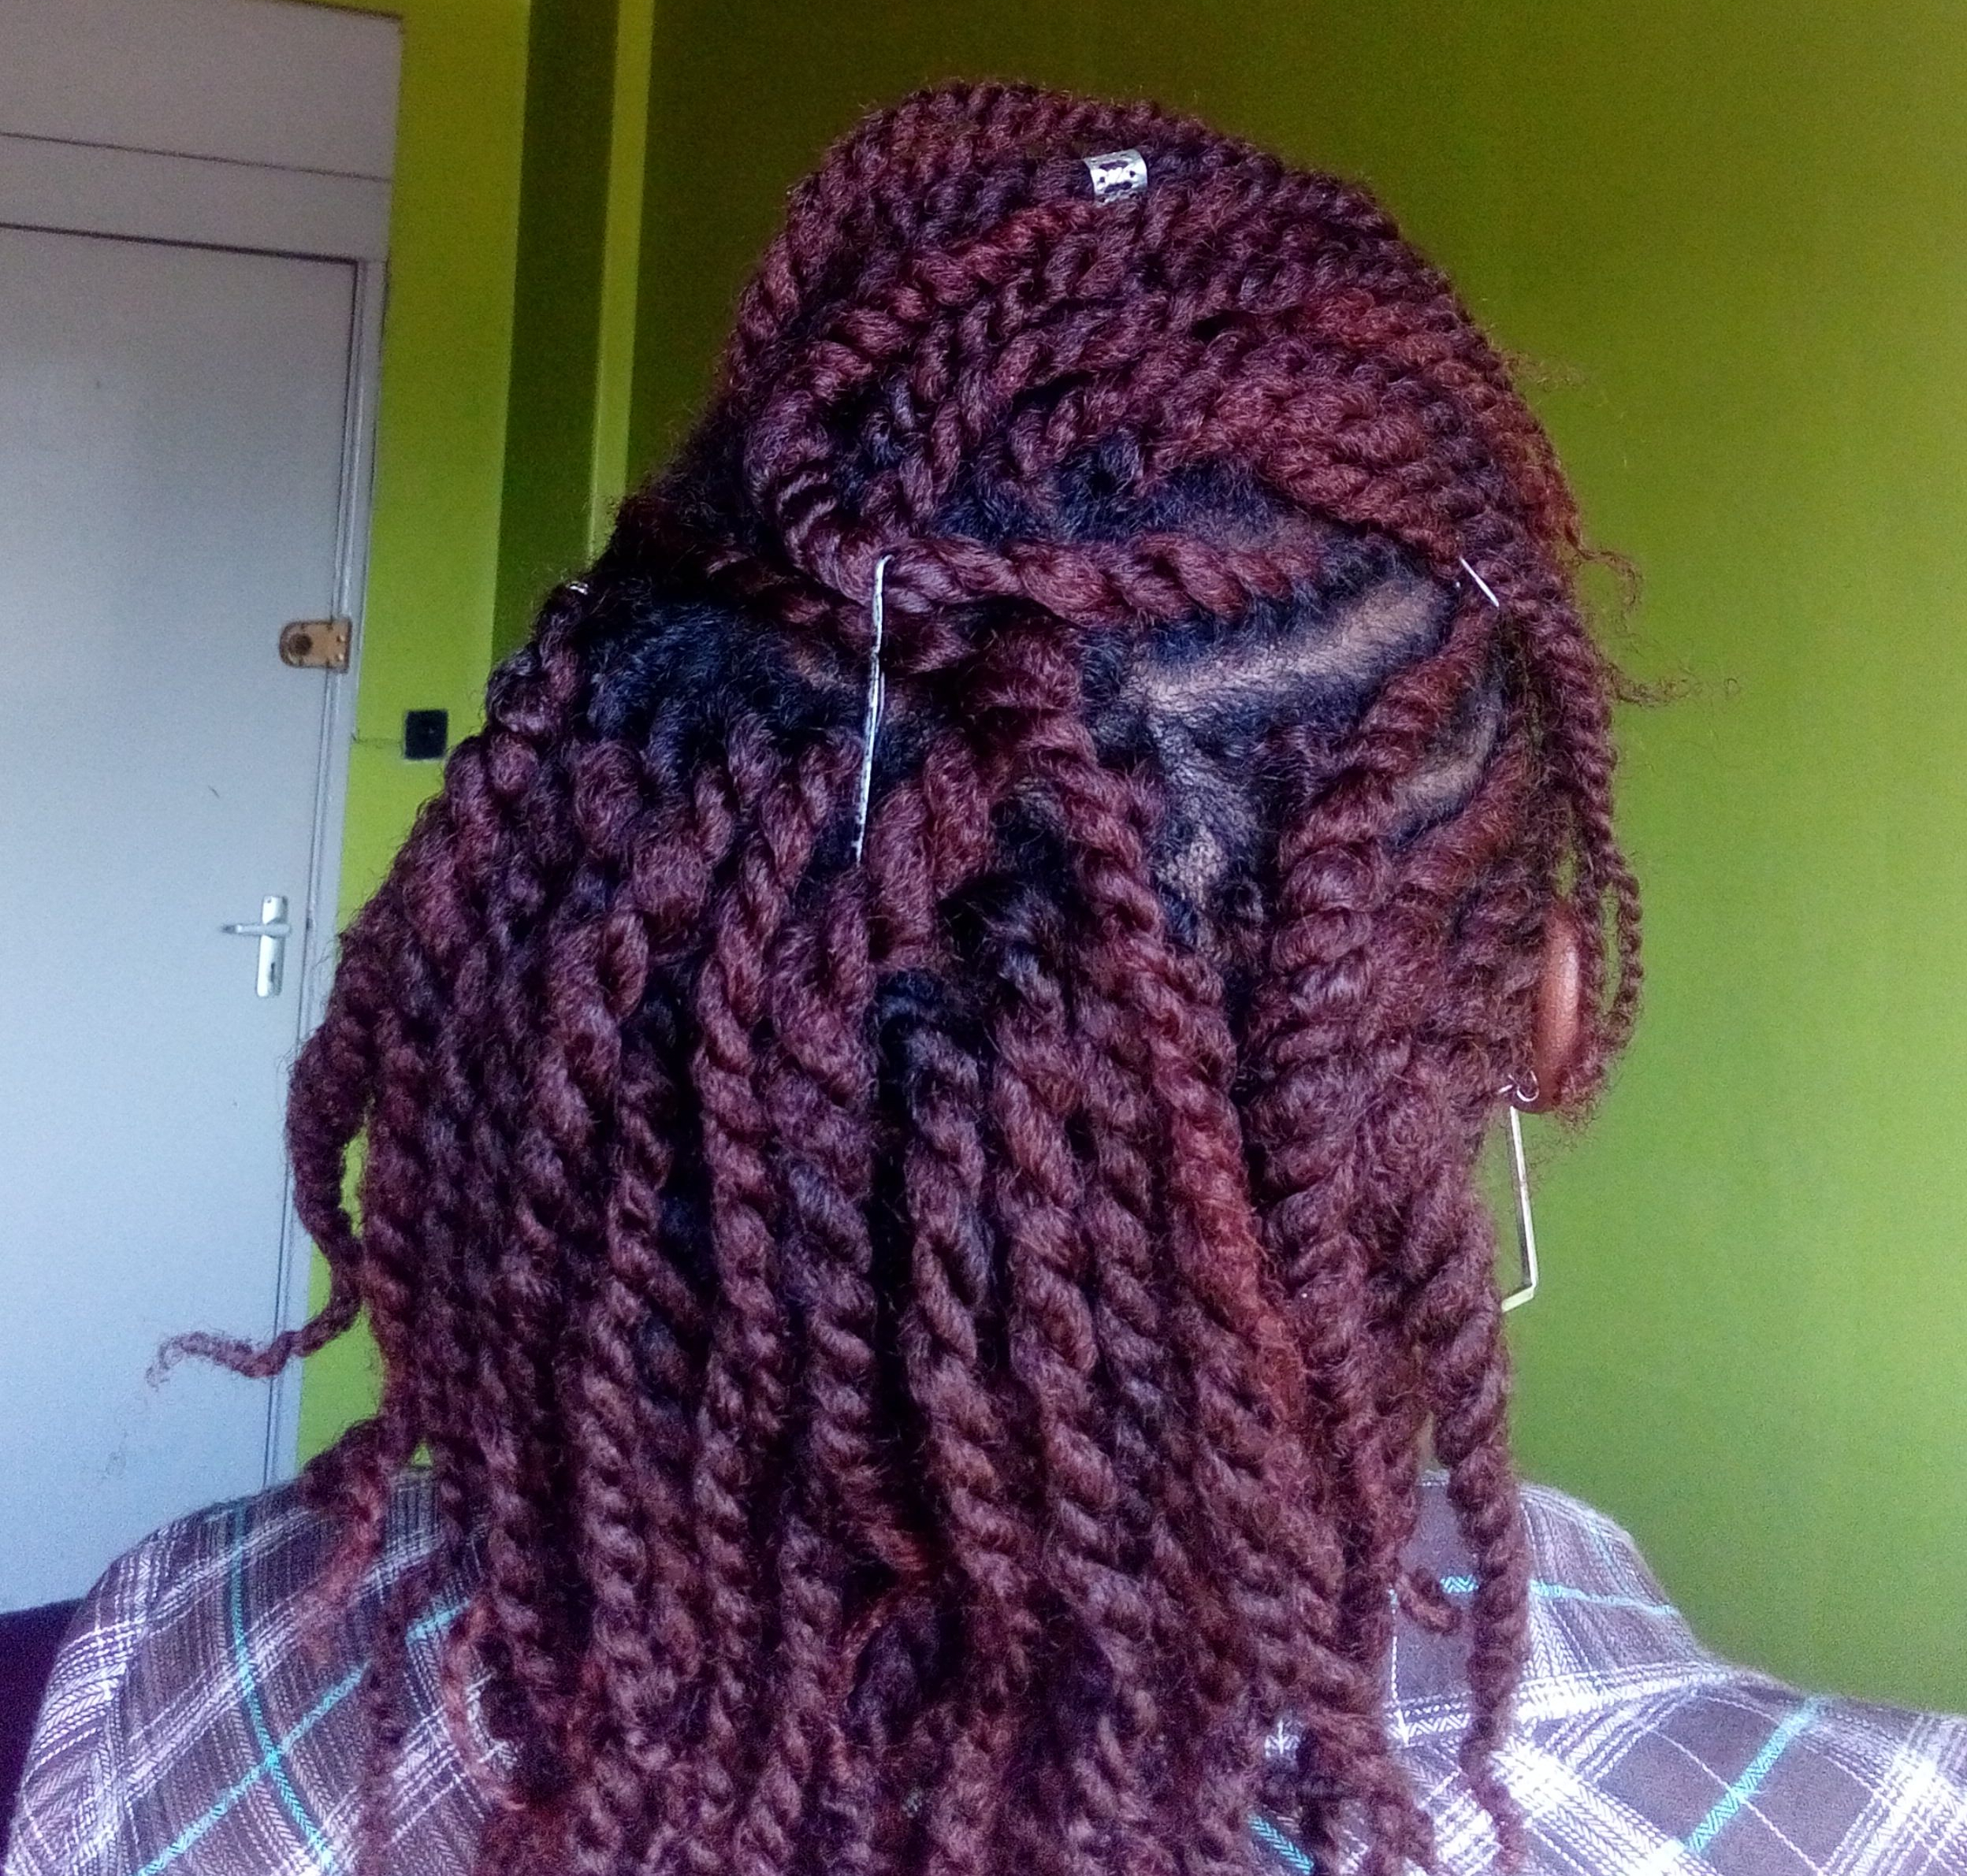 Creme of Nature Burgundy dye on type 4 natural hair